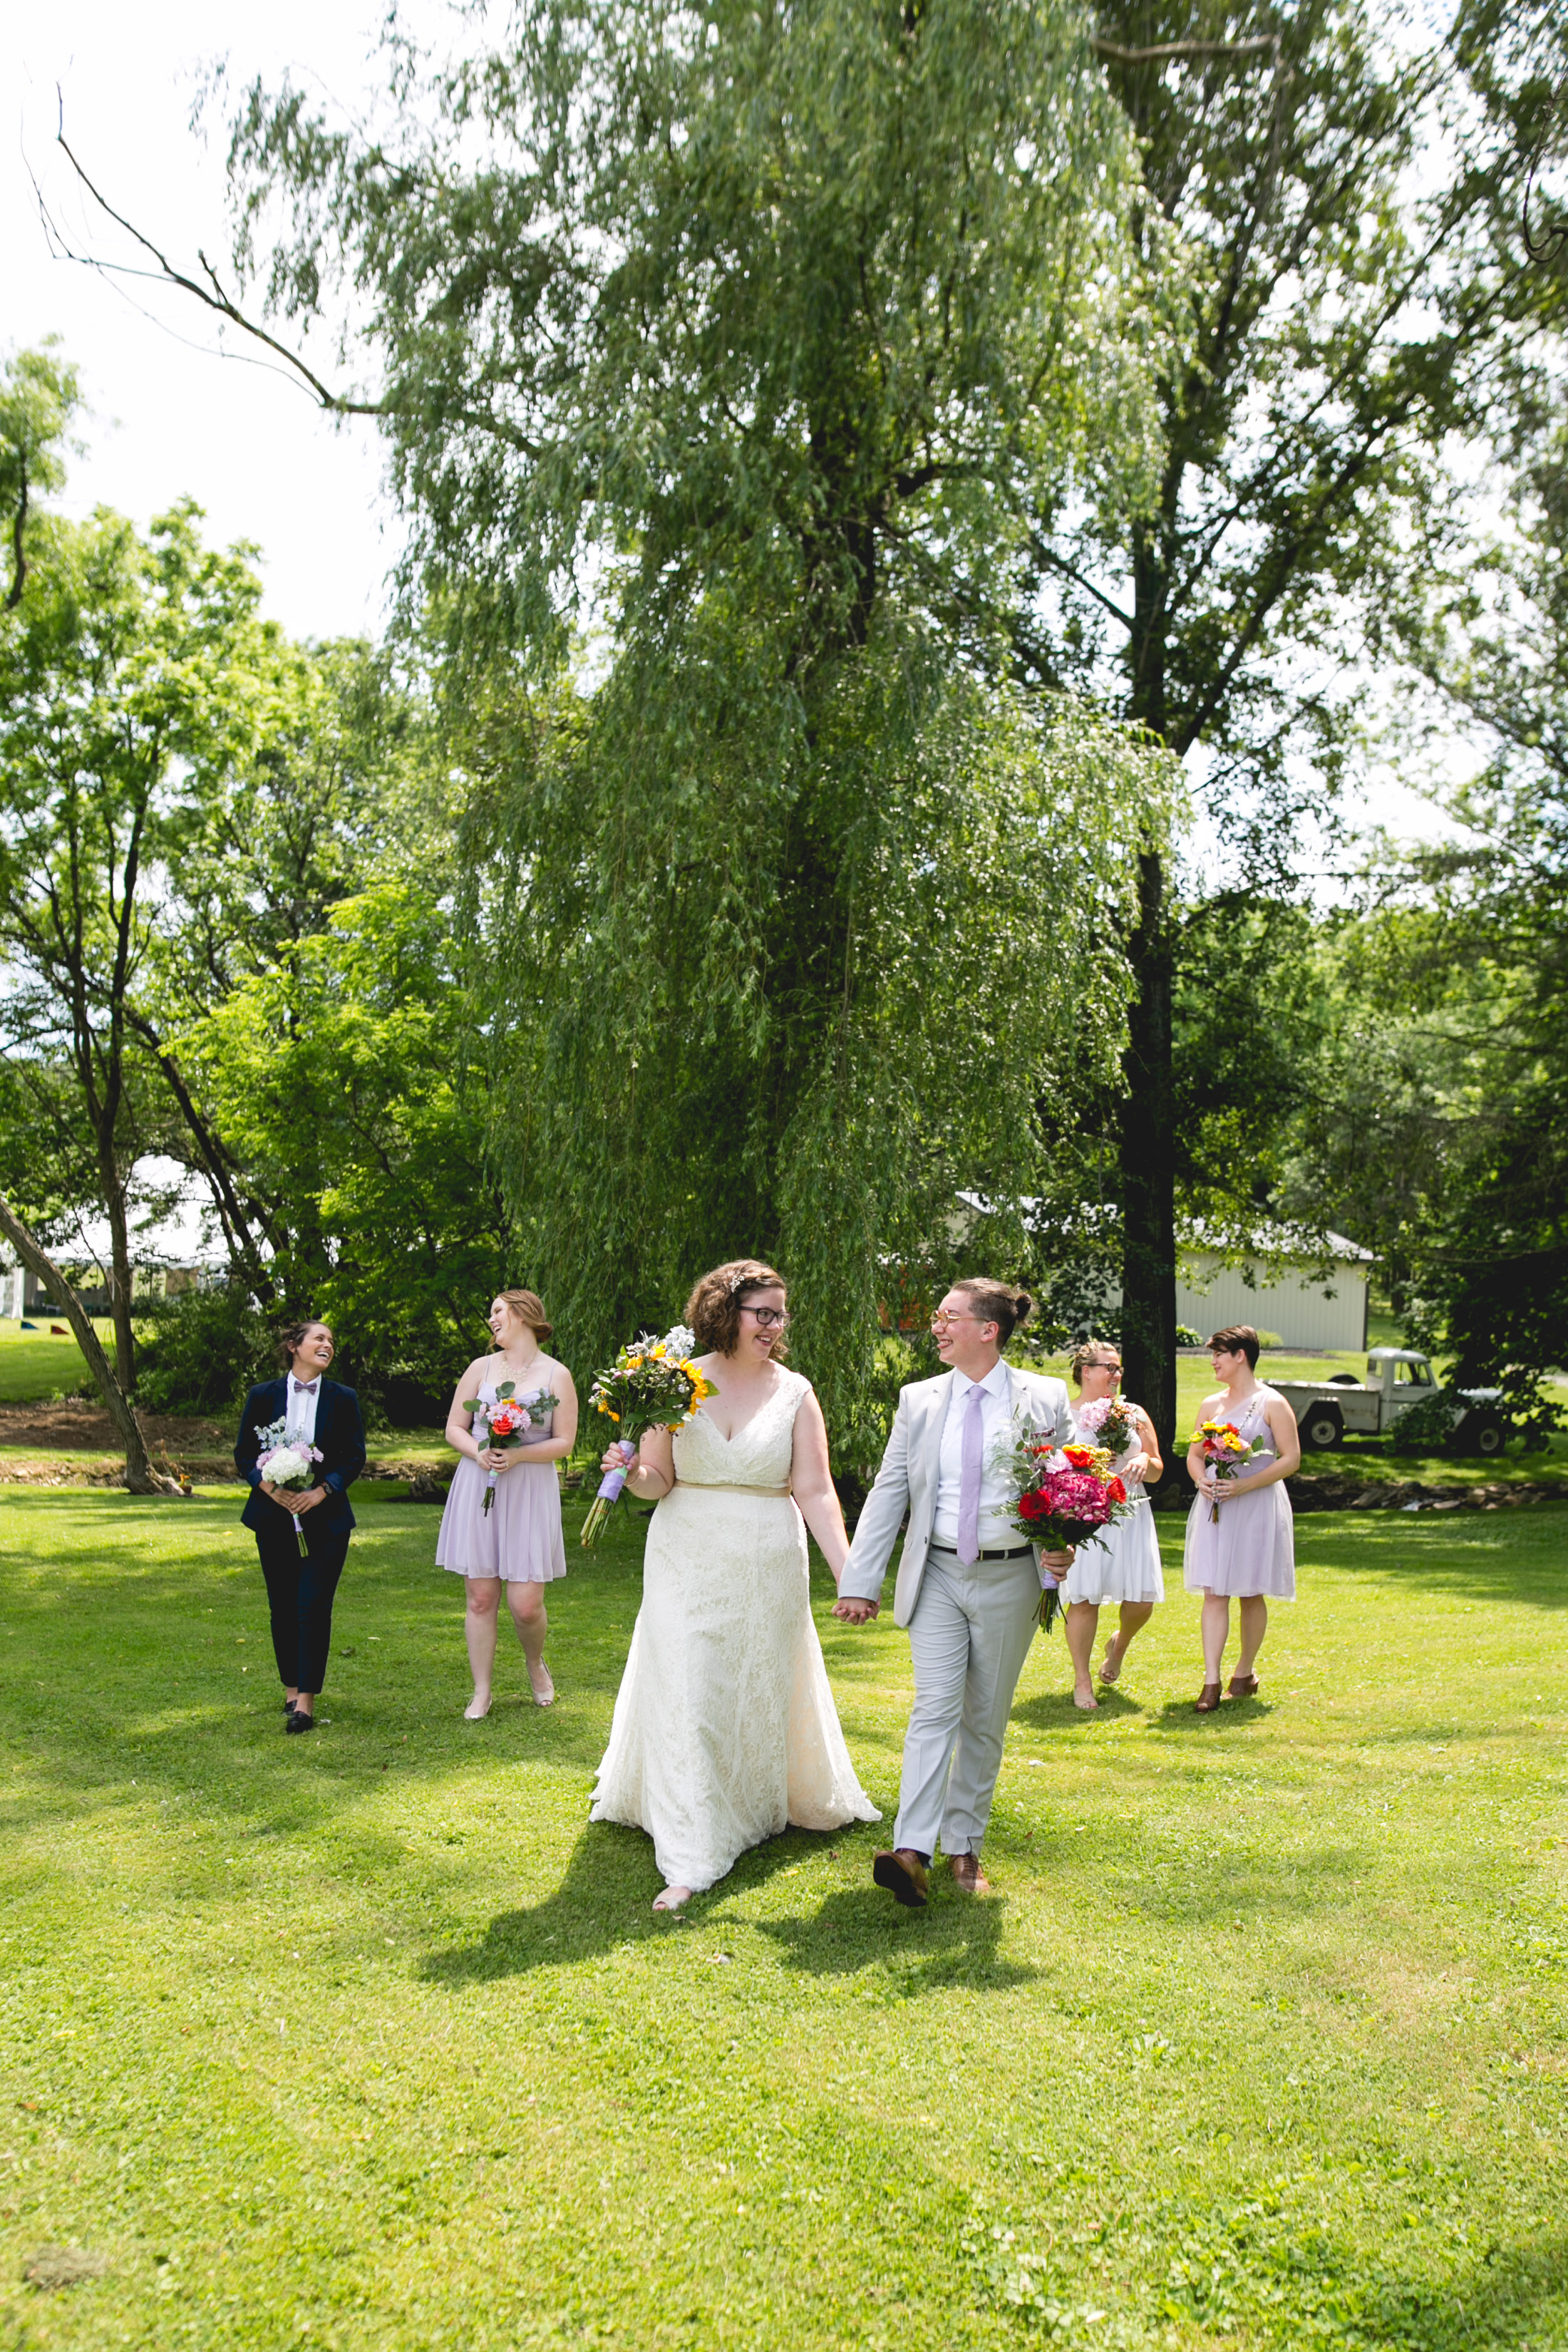 Alex and Lee - A Queer Walnutport PA Wedding, Philadelphia LGBTQ Wedding Photographer, Queer Bridal Party